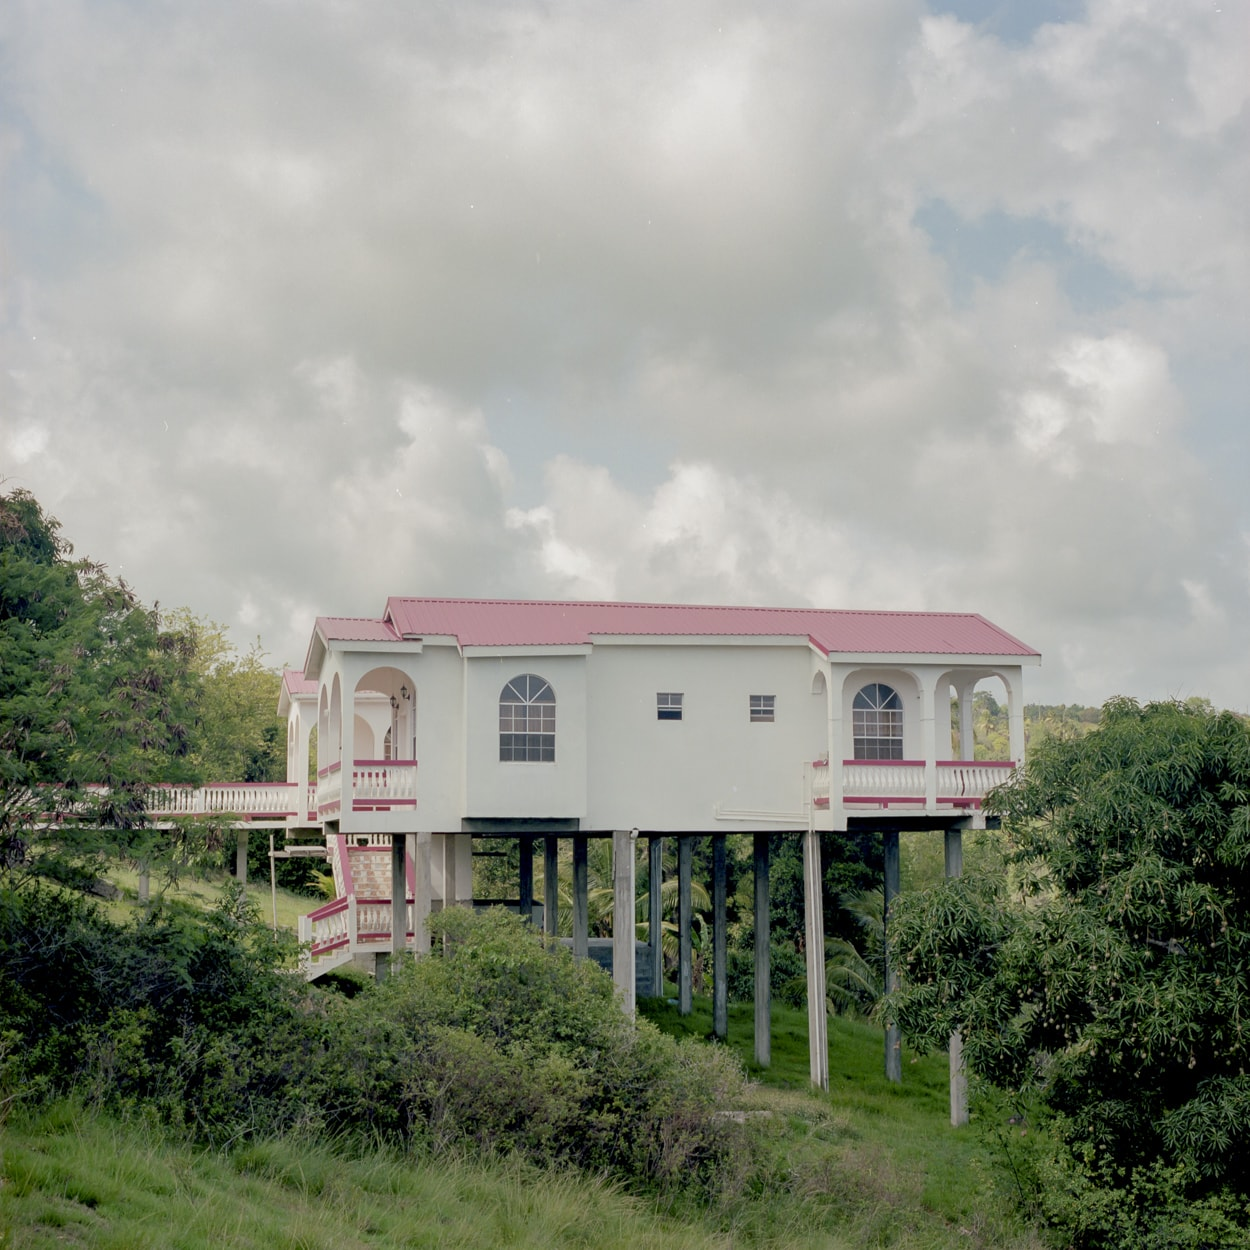 A house on stilts built on the side of a hill